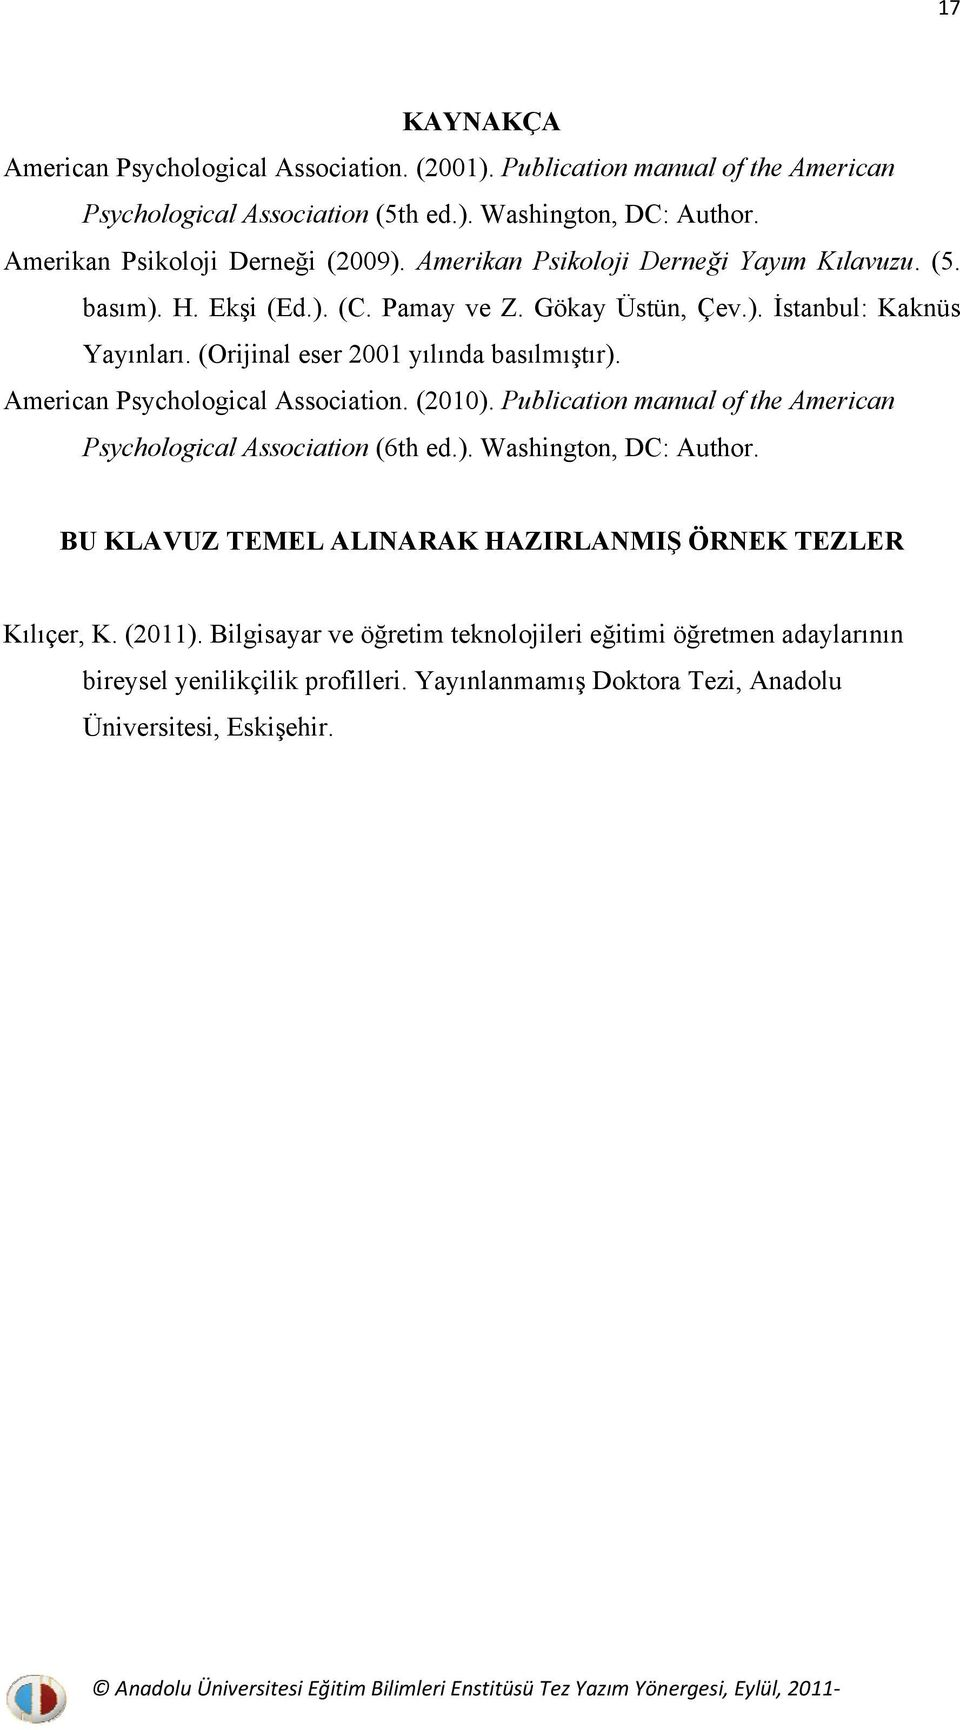 (Orijinal eser 2001 yılında basılmıştır). American Psychological Association. (2010). Publication manual of the American Psychological Association (6th ed.). Washington, DC: Author.